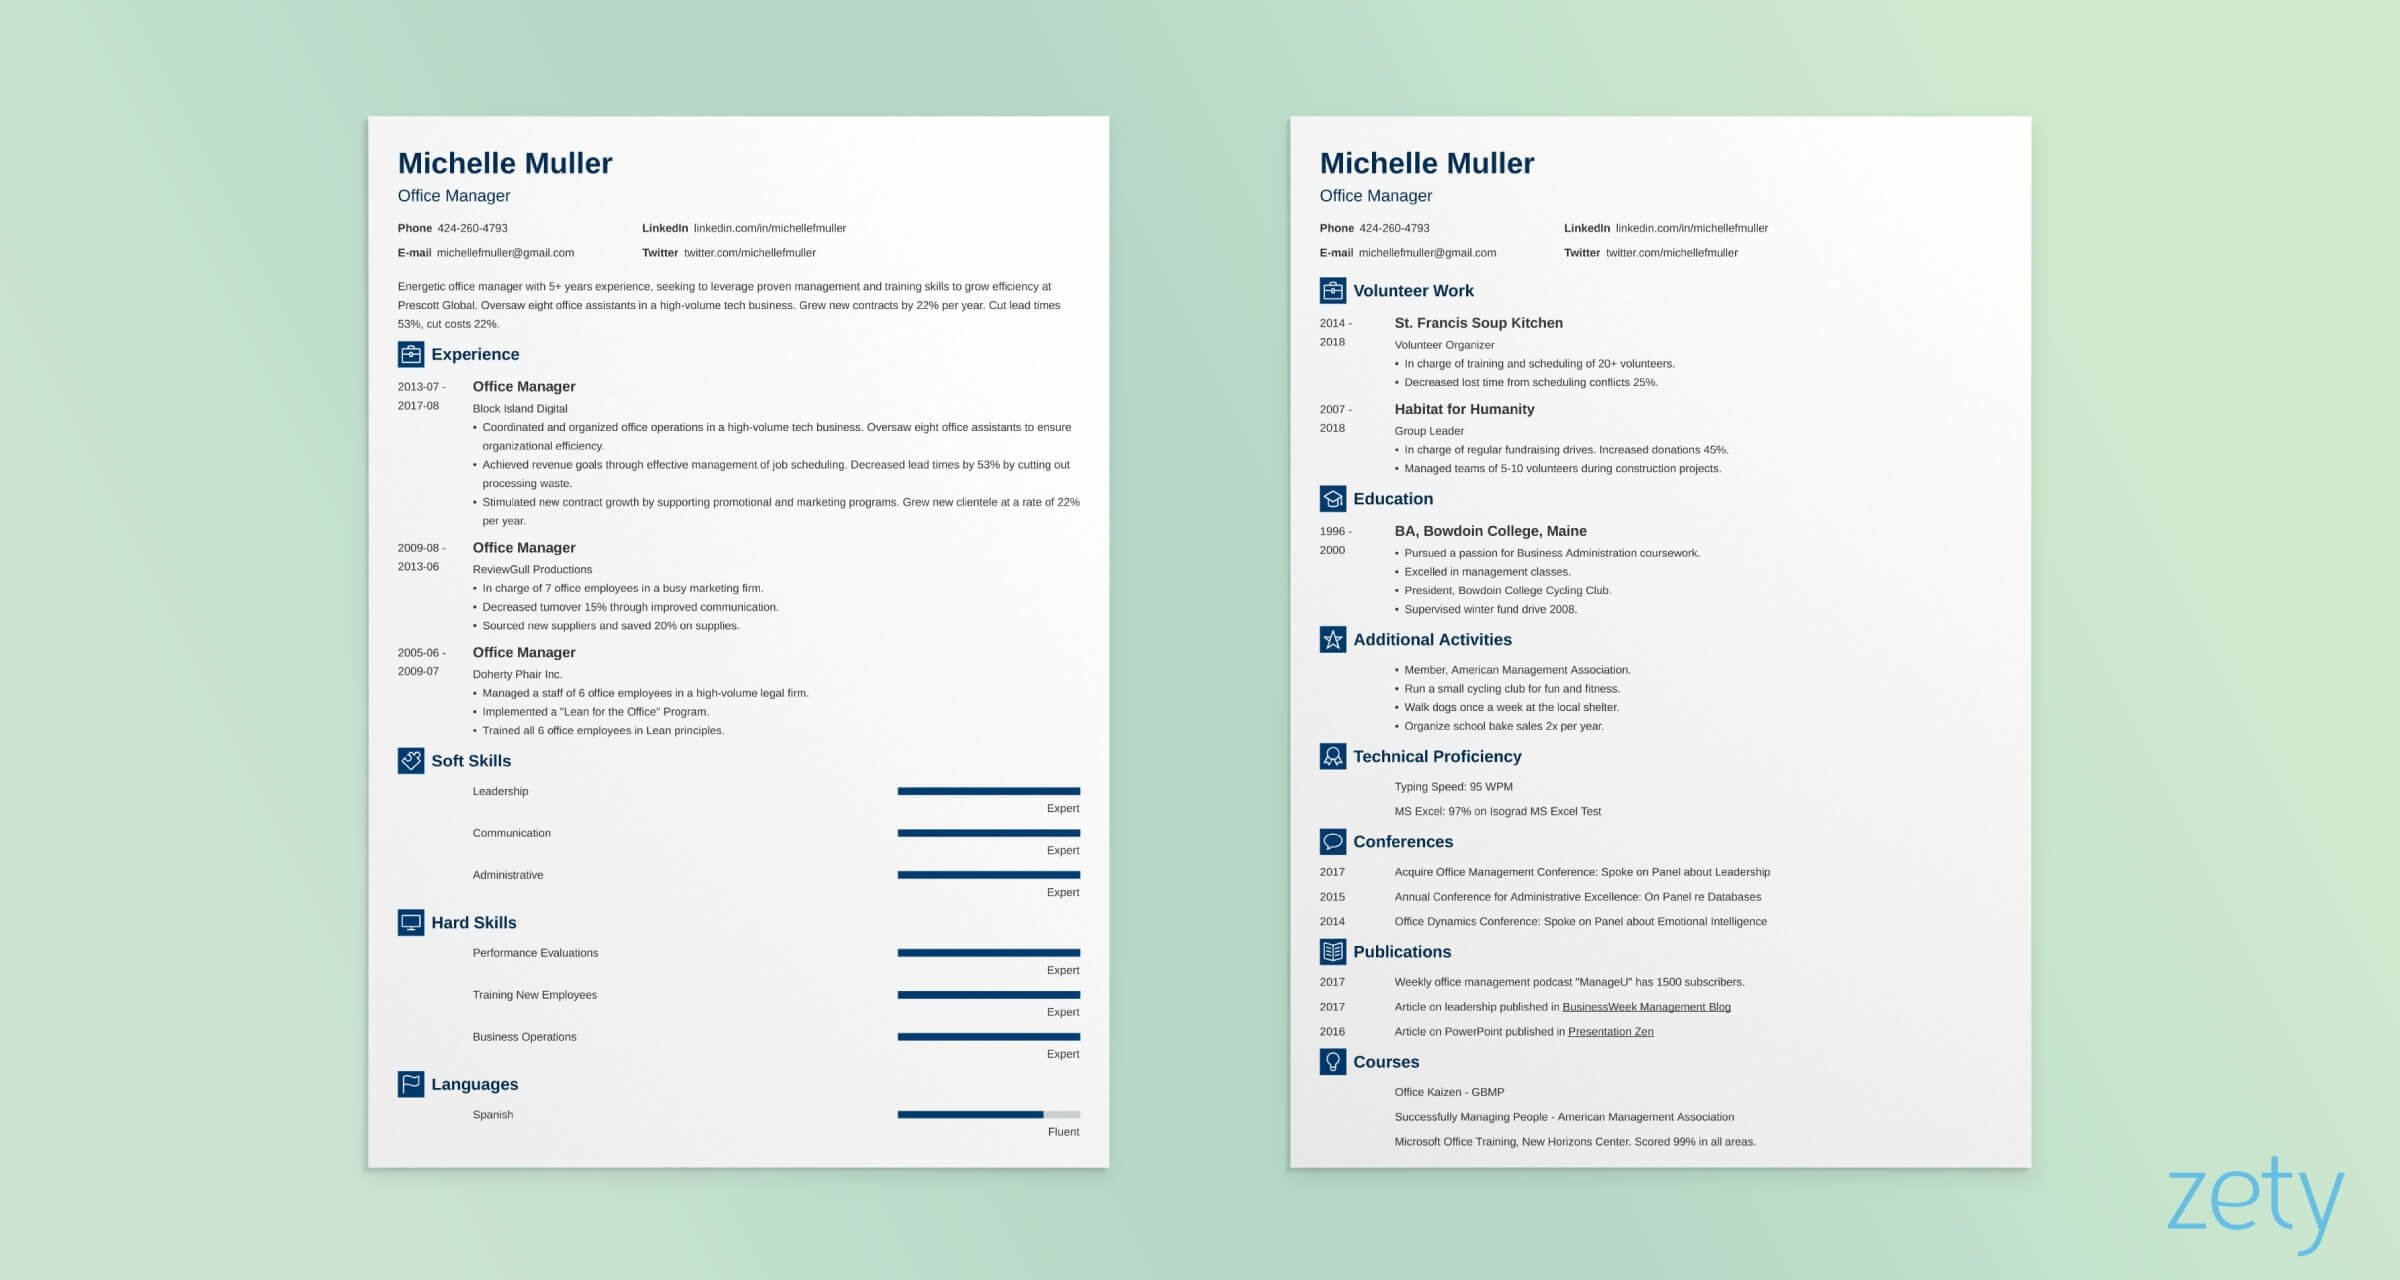 resume it crush your chances format tips one or two newcast1 original templates federal Resume One Or Two Page Resume 2019